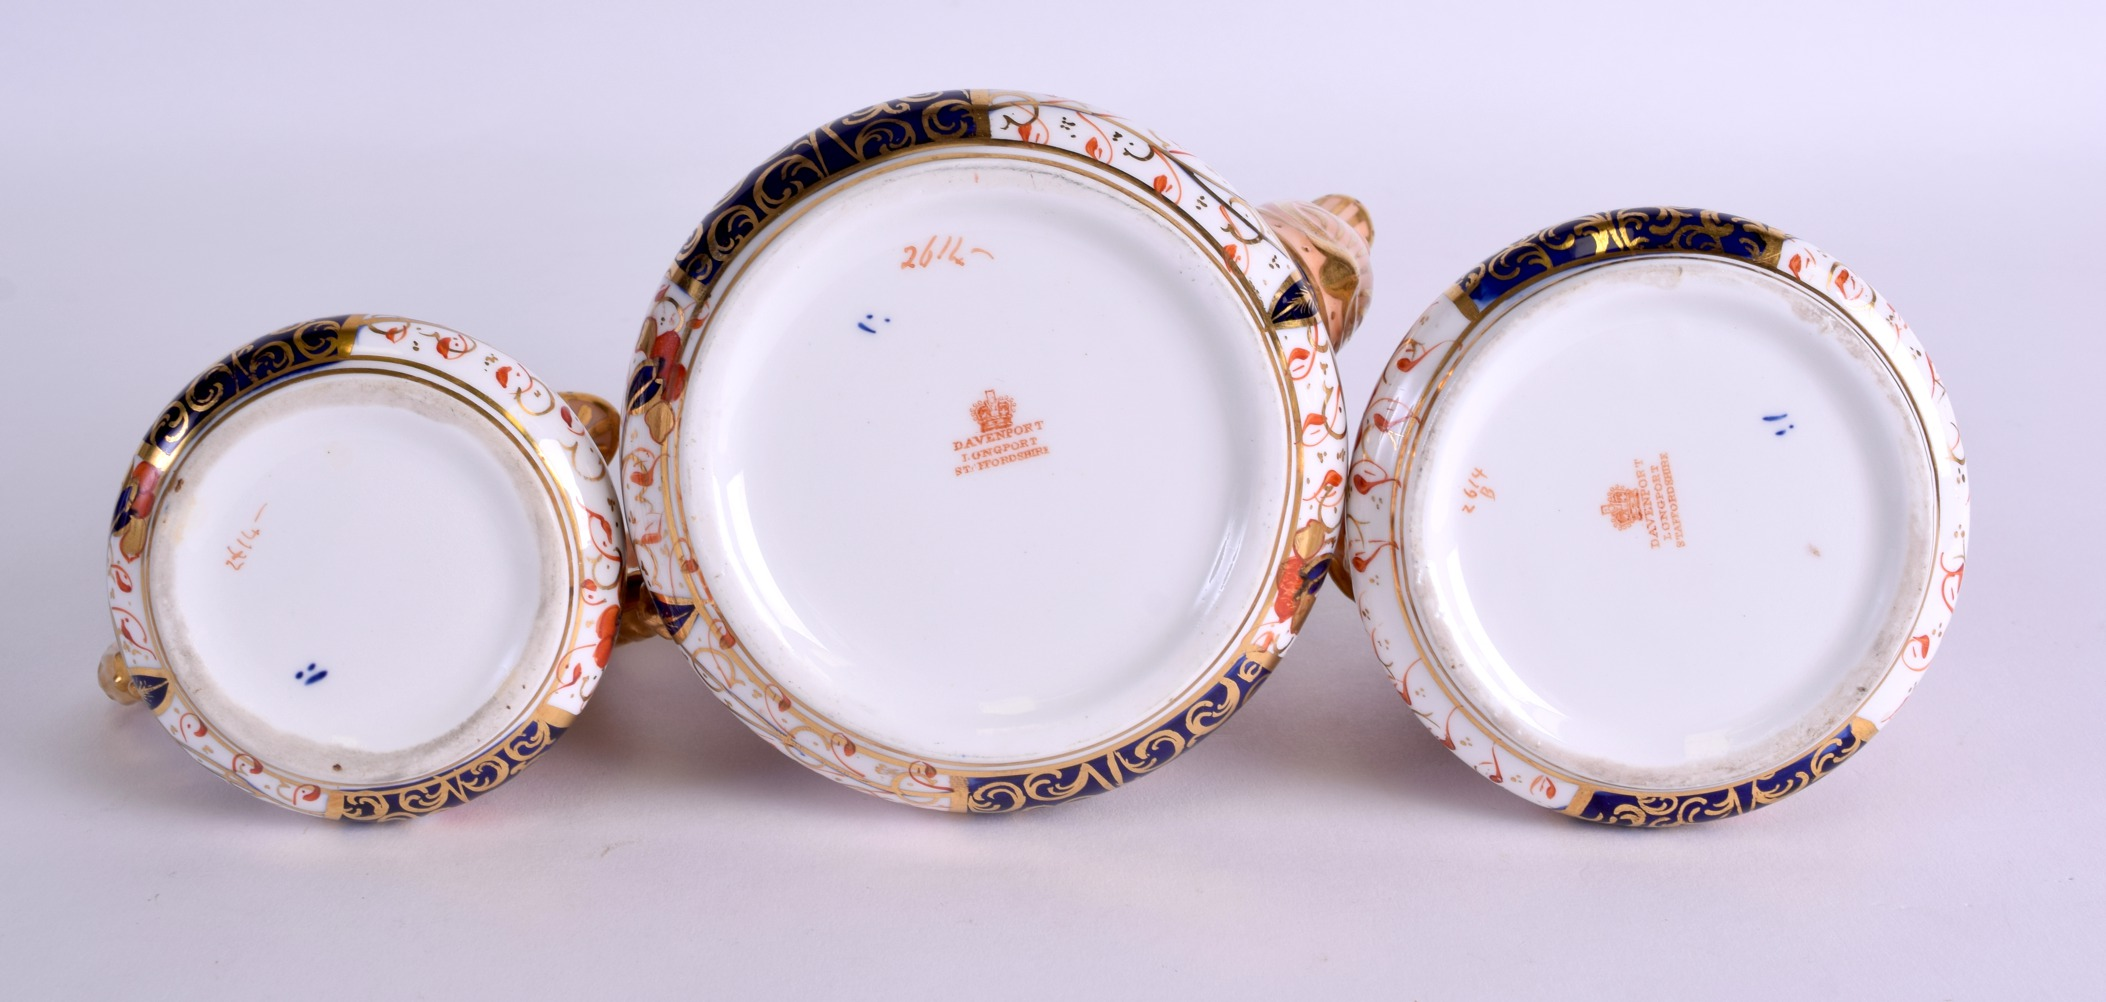 Lot 80 - A 19TH CENTURY DAVENPORT IMARI THREE PIECE TEASET painted with flowers. Teapot 16 cm wide. (3)